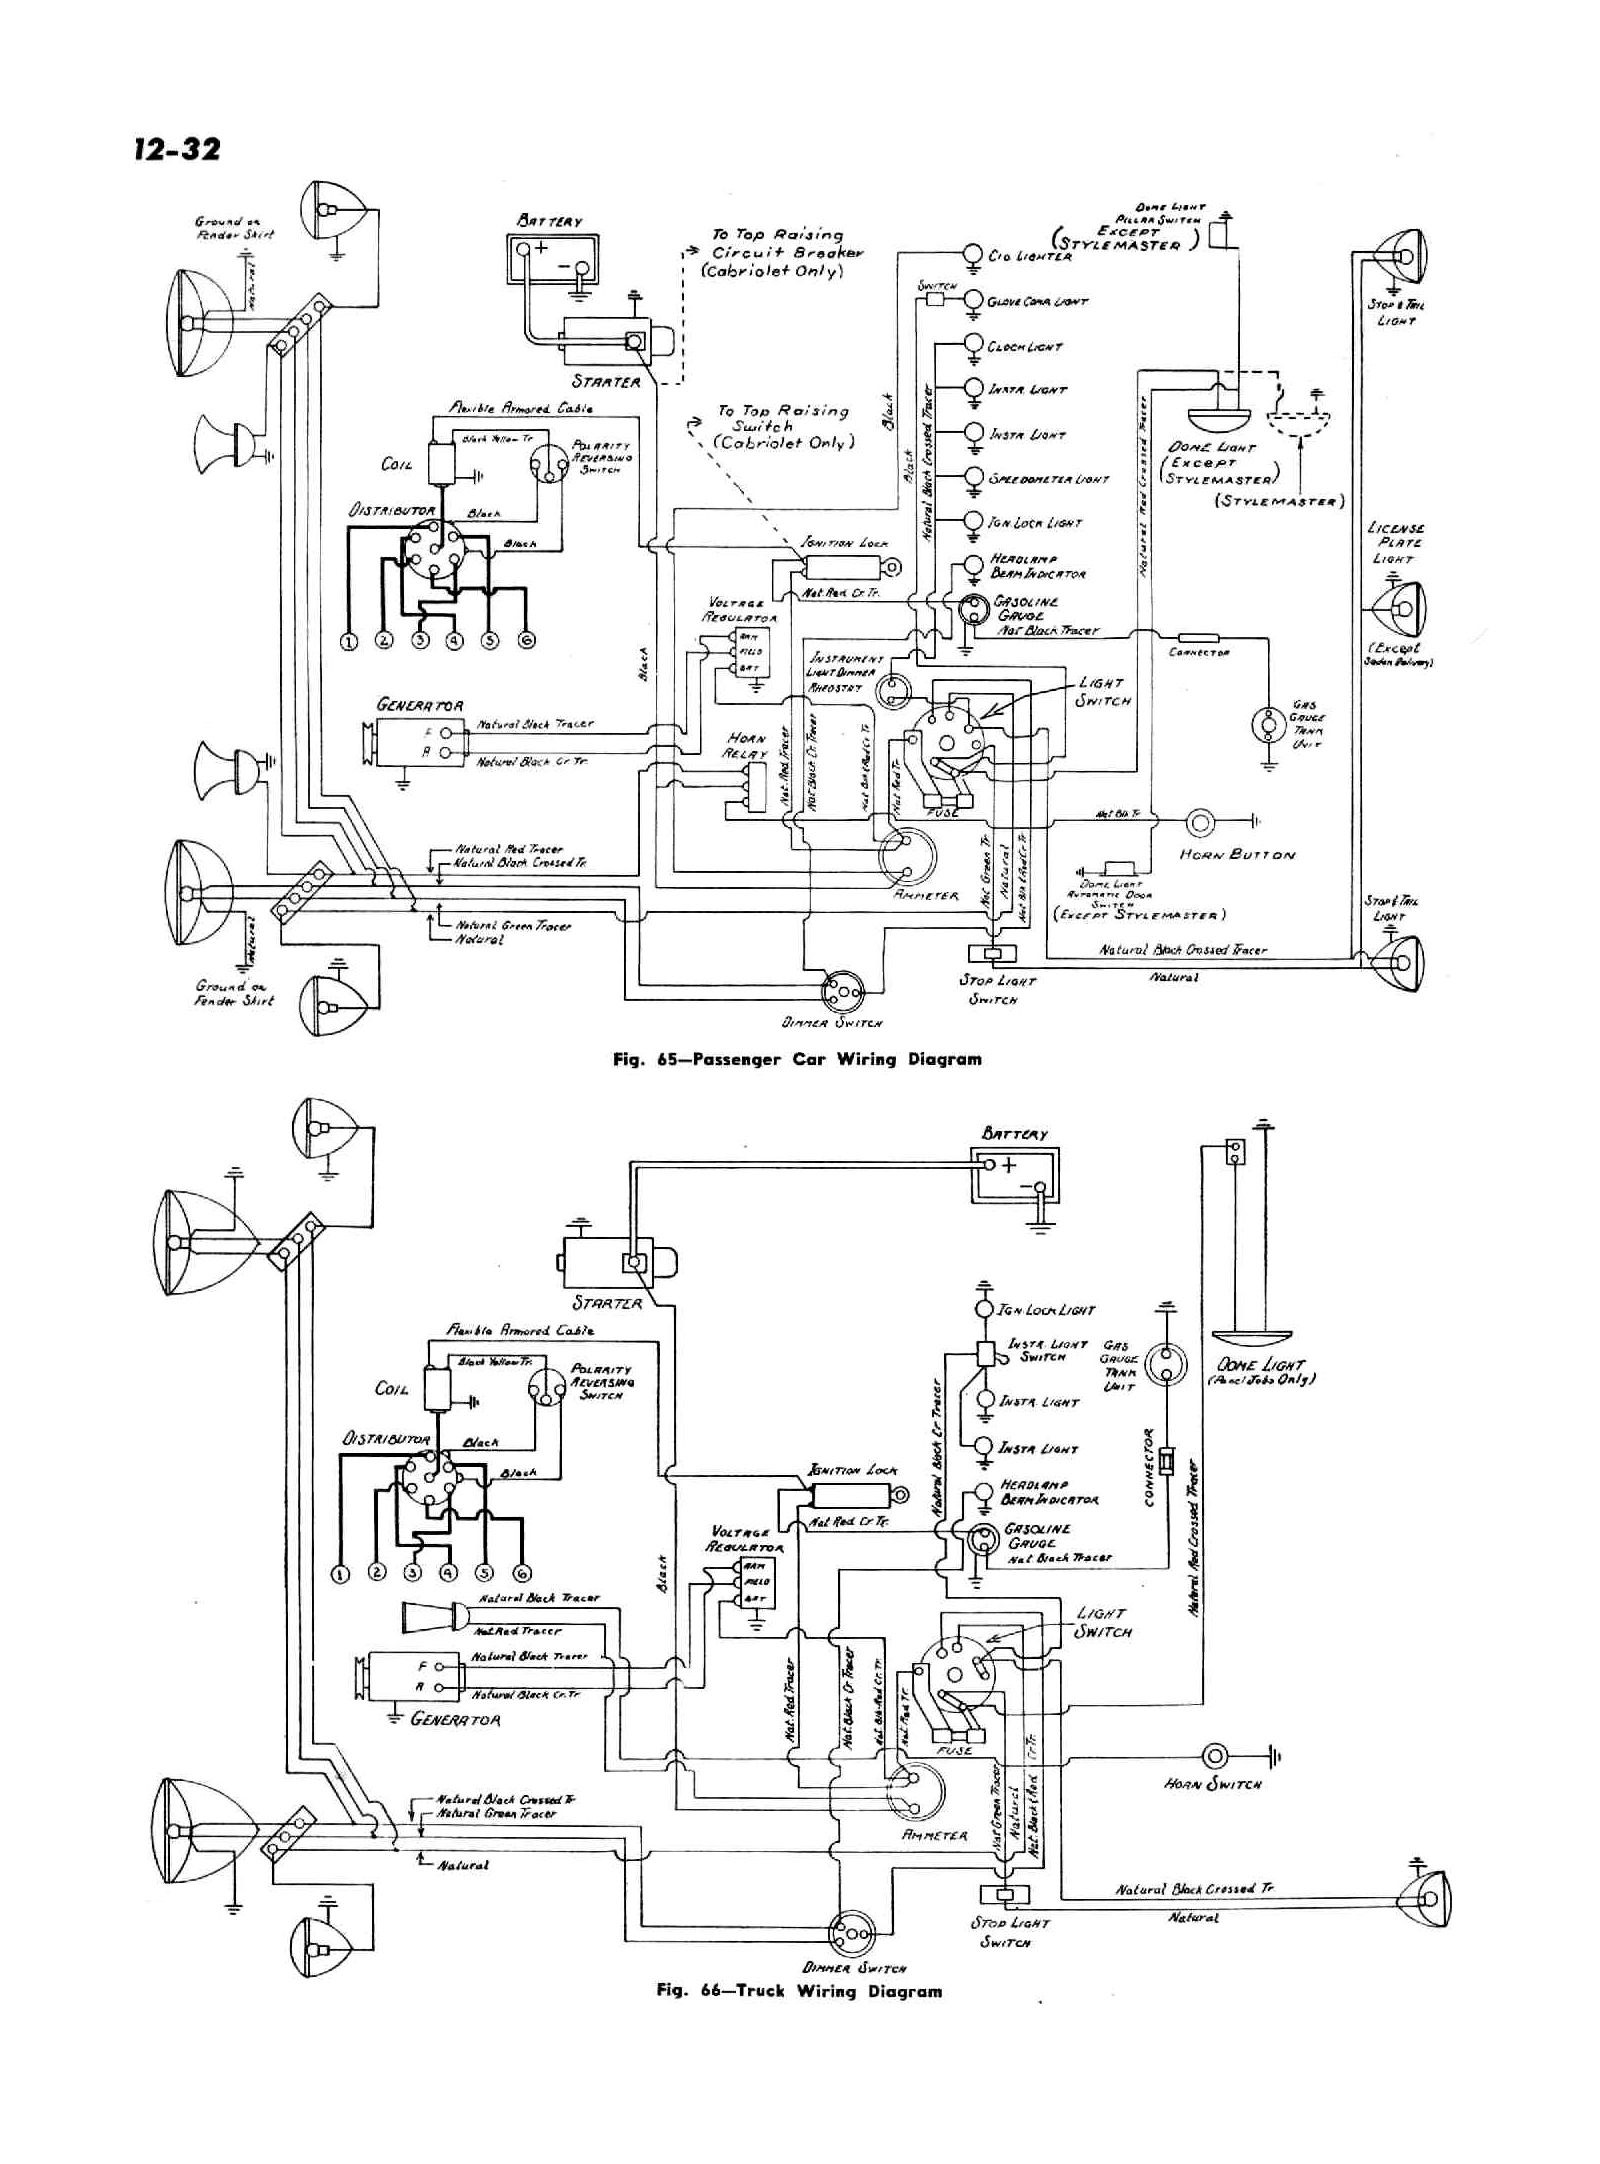 Kohler Engine Ignition Wiring Diagram Ignition Switch Wiring Diagram Chevy New Universal Autoctono Of Kohler Engine Ignition Wiring Diagram